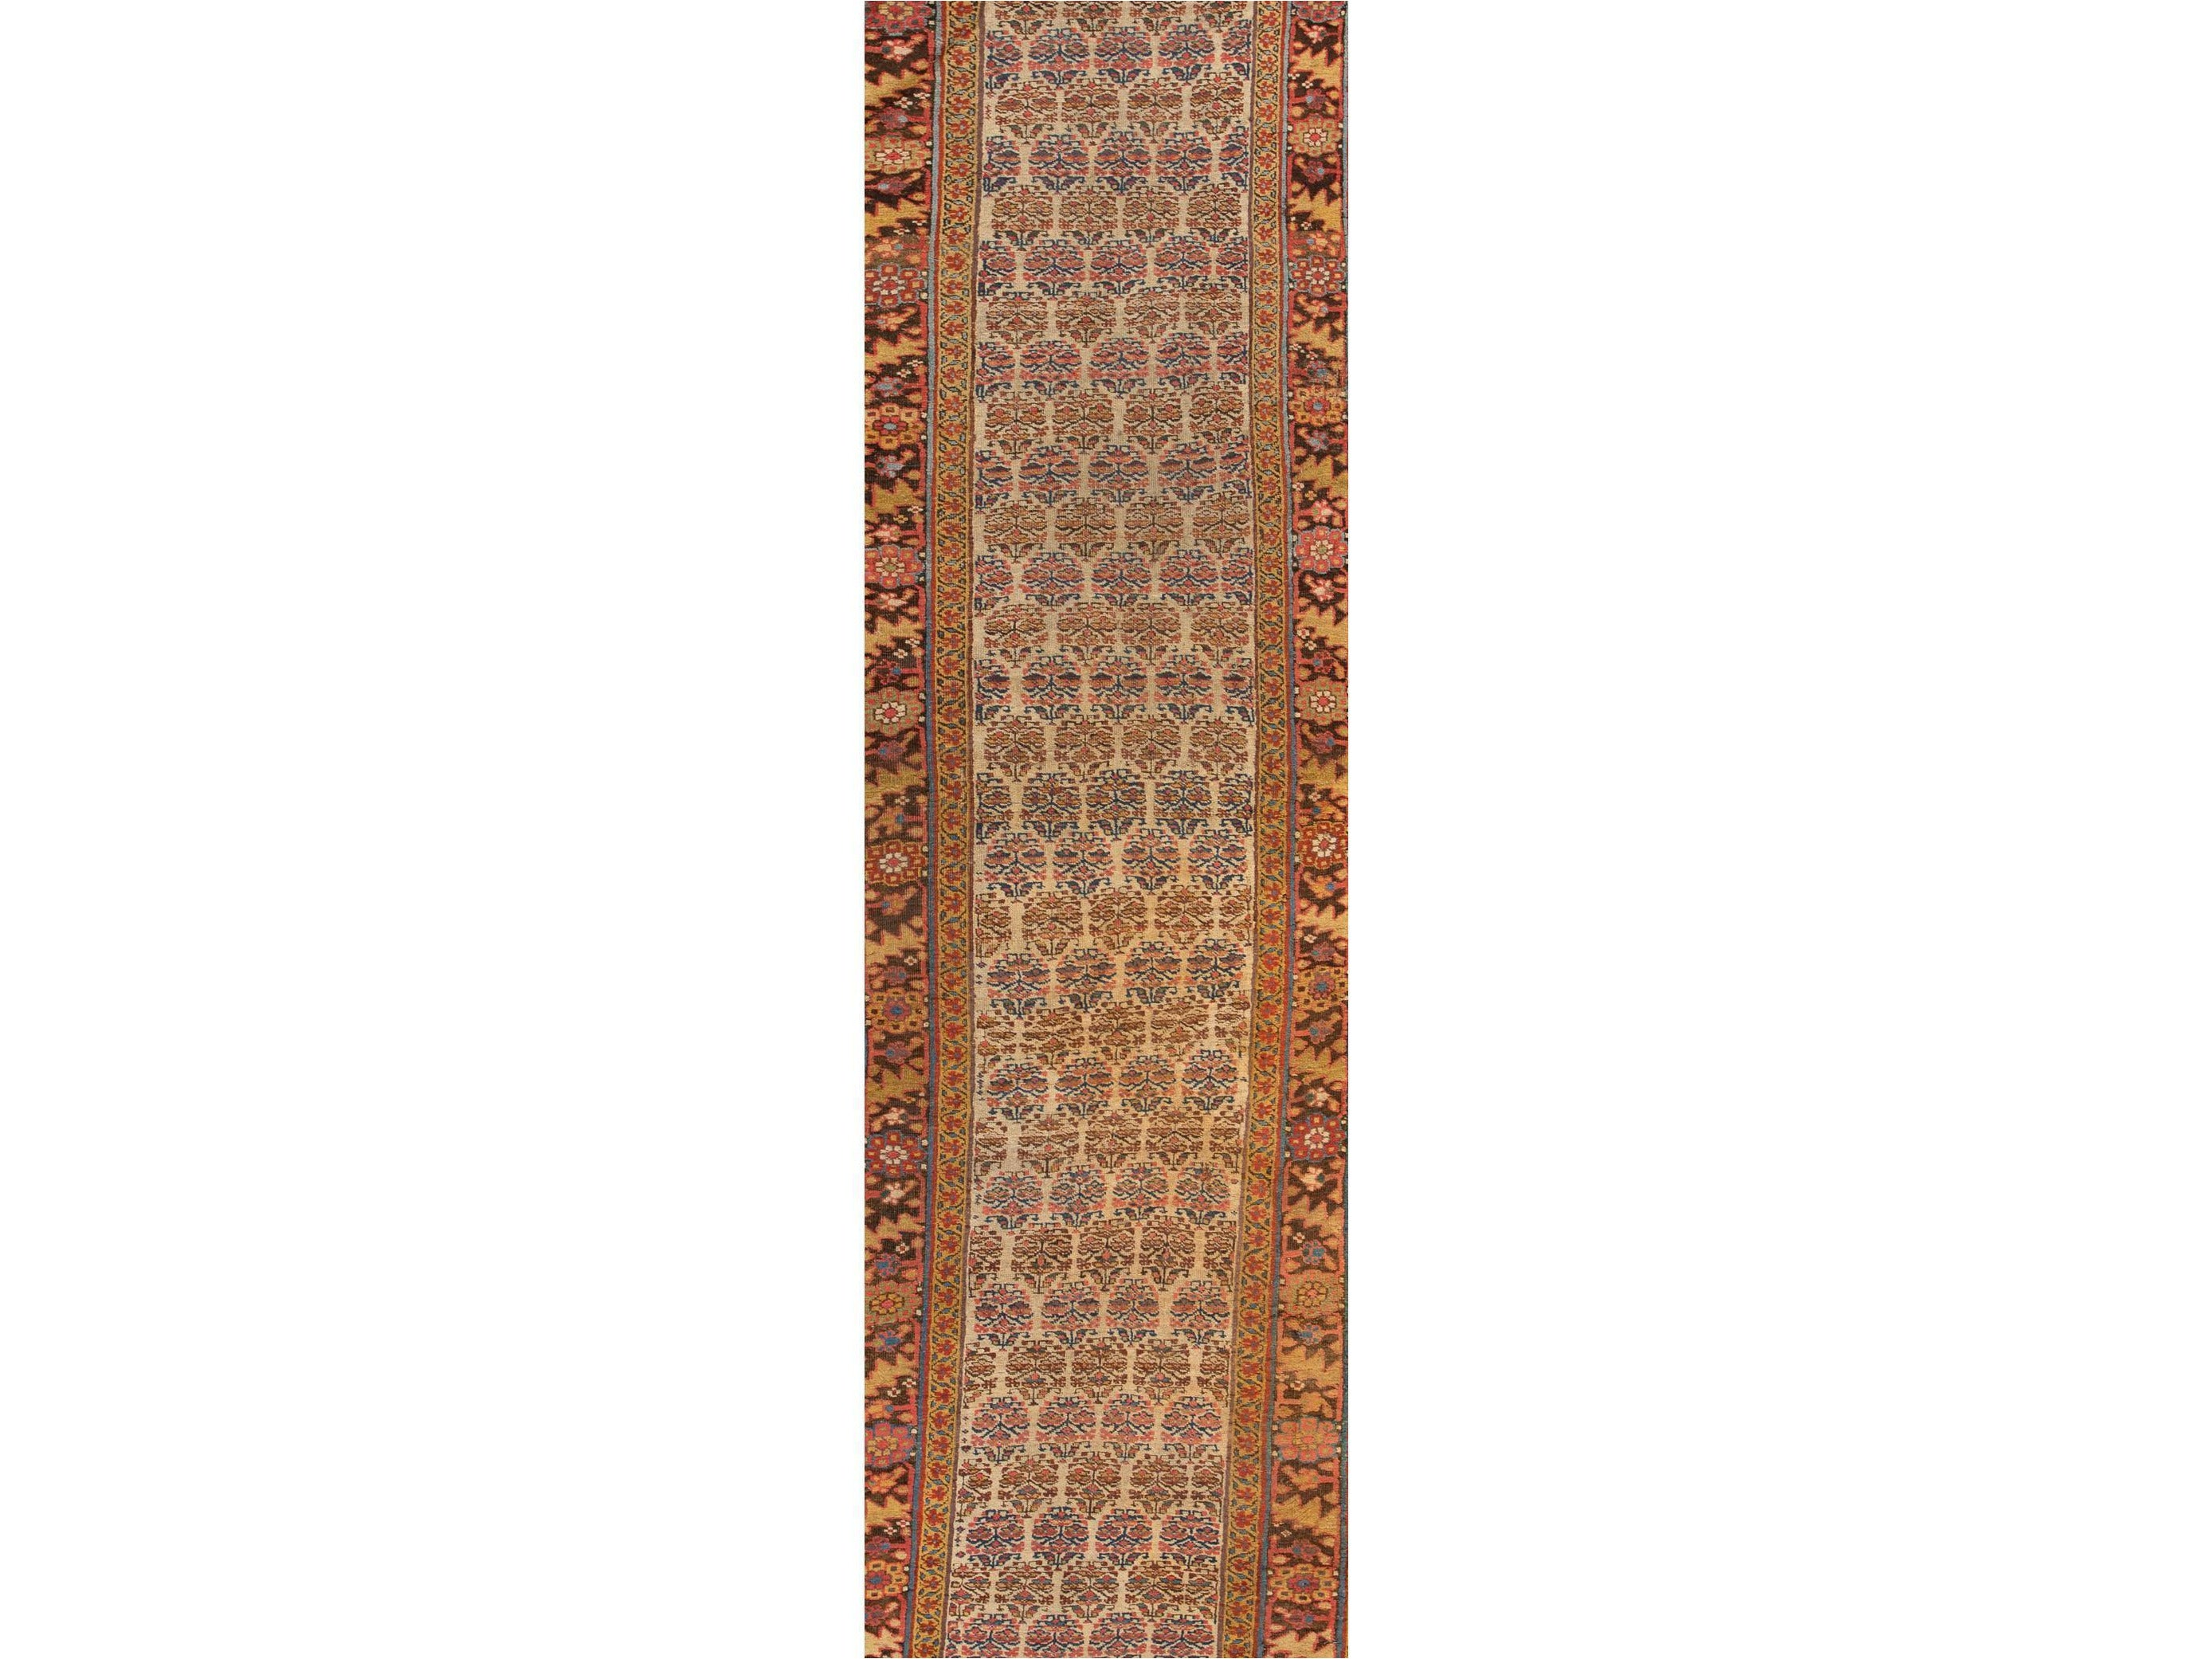 Antique Bidjar Wool Rug, 3 X 13